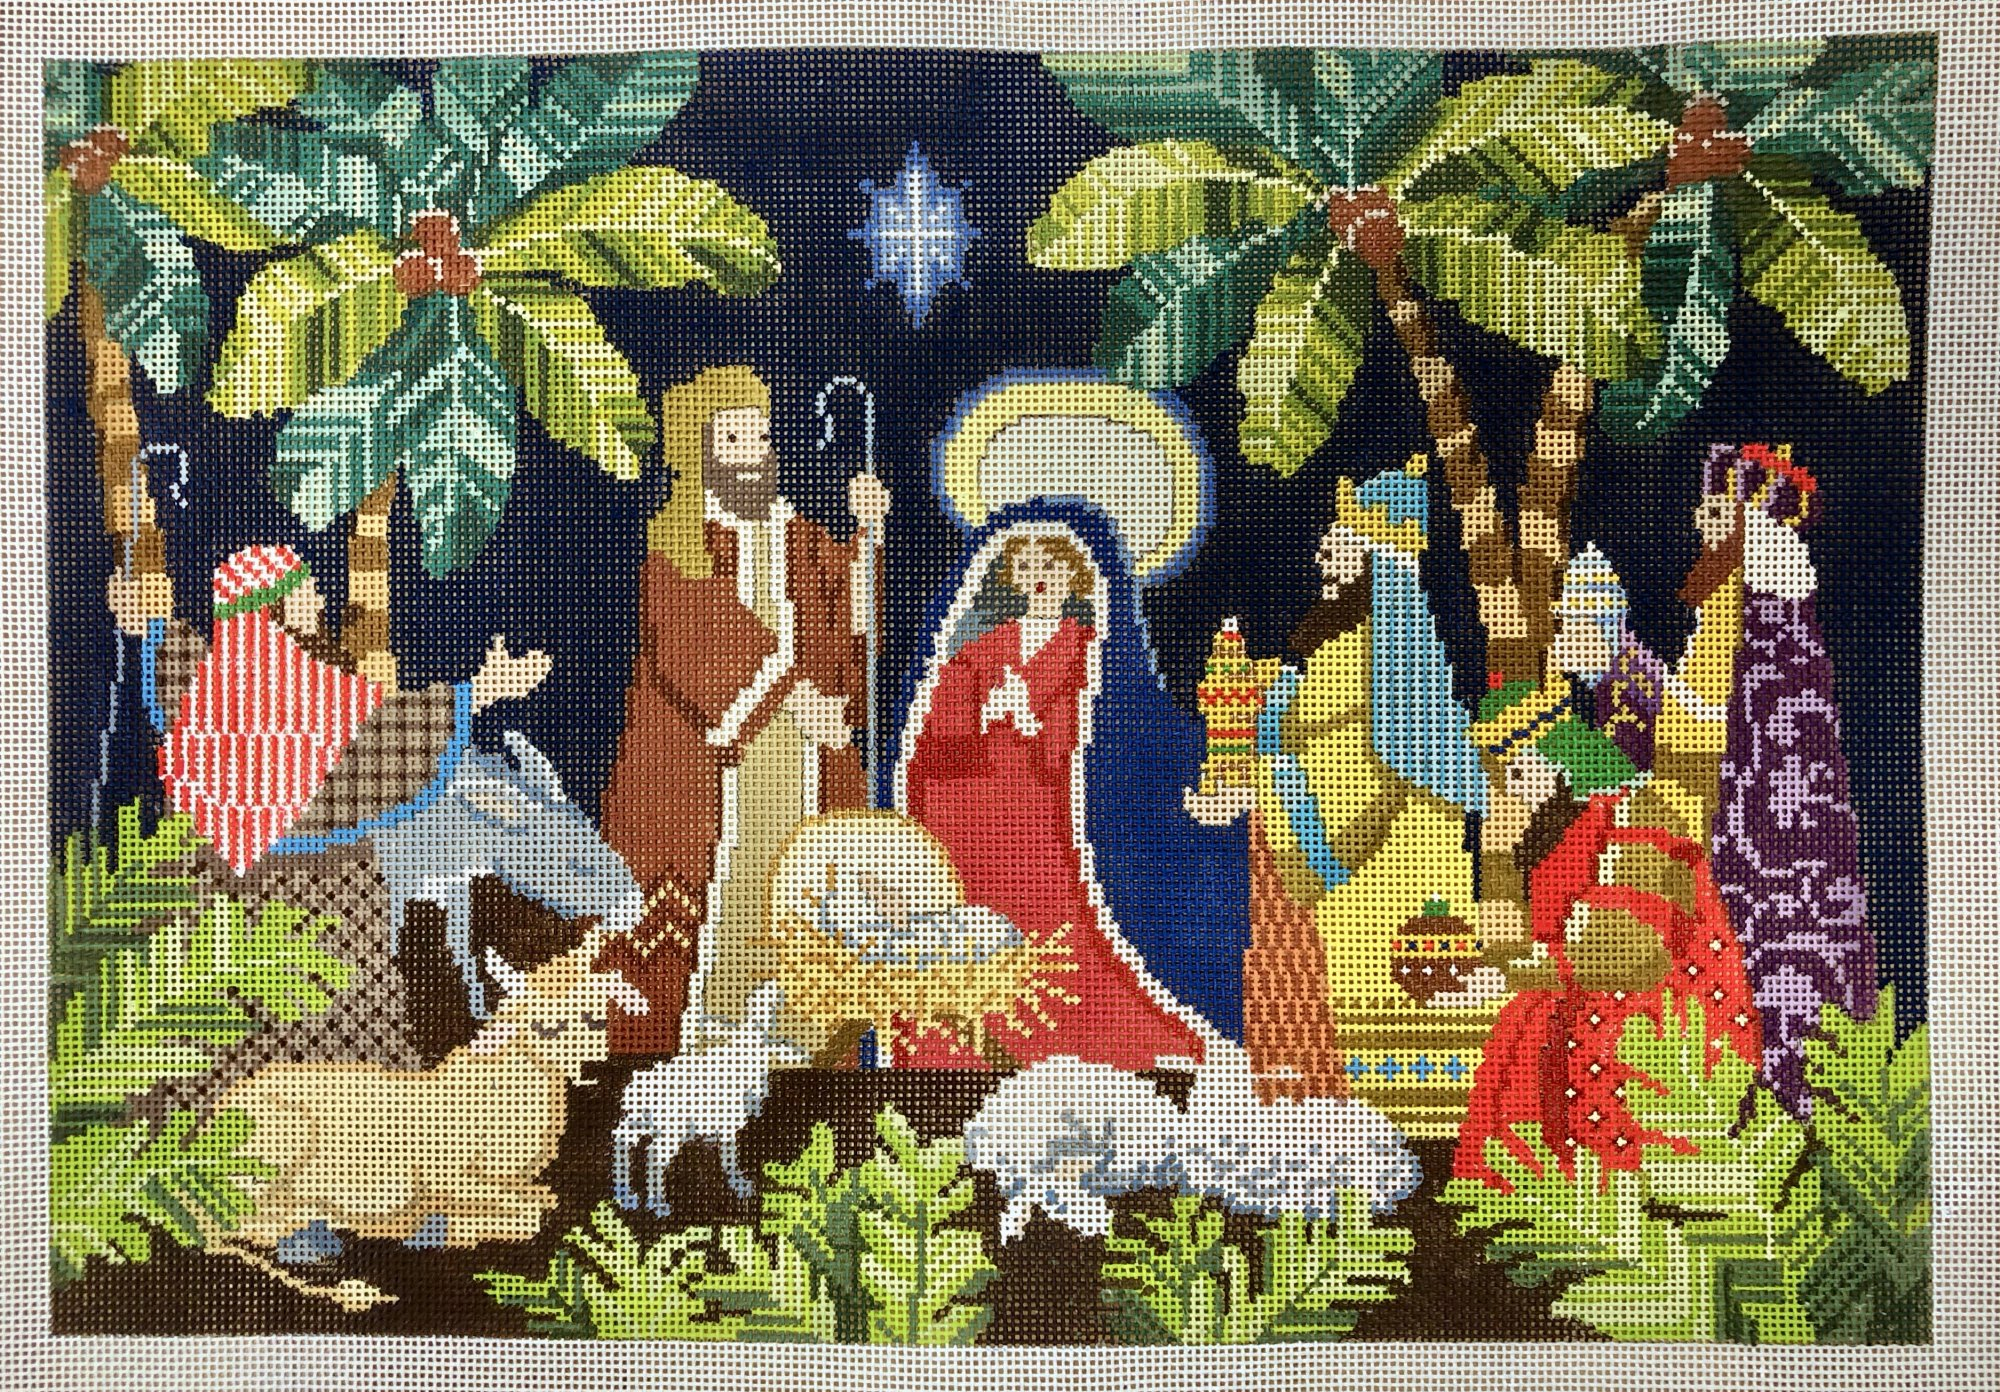 nativity w palm trees